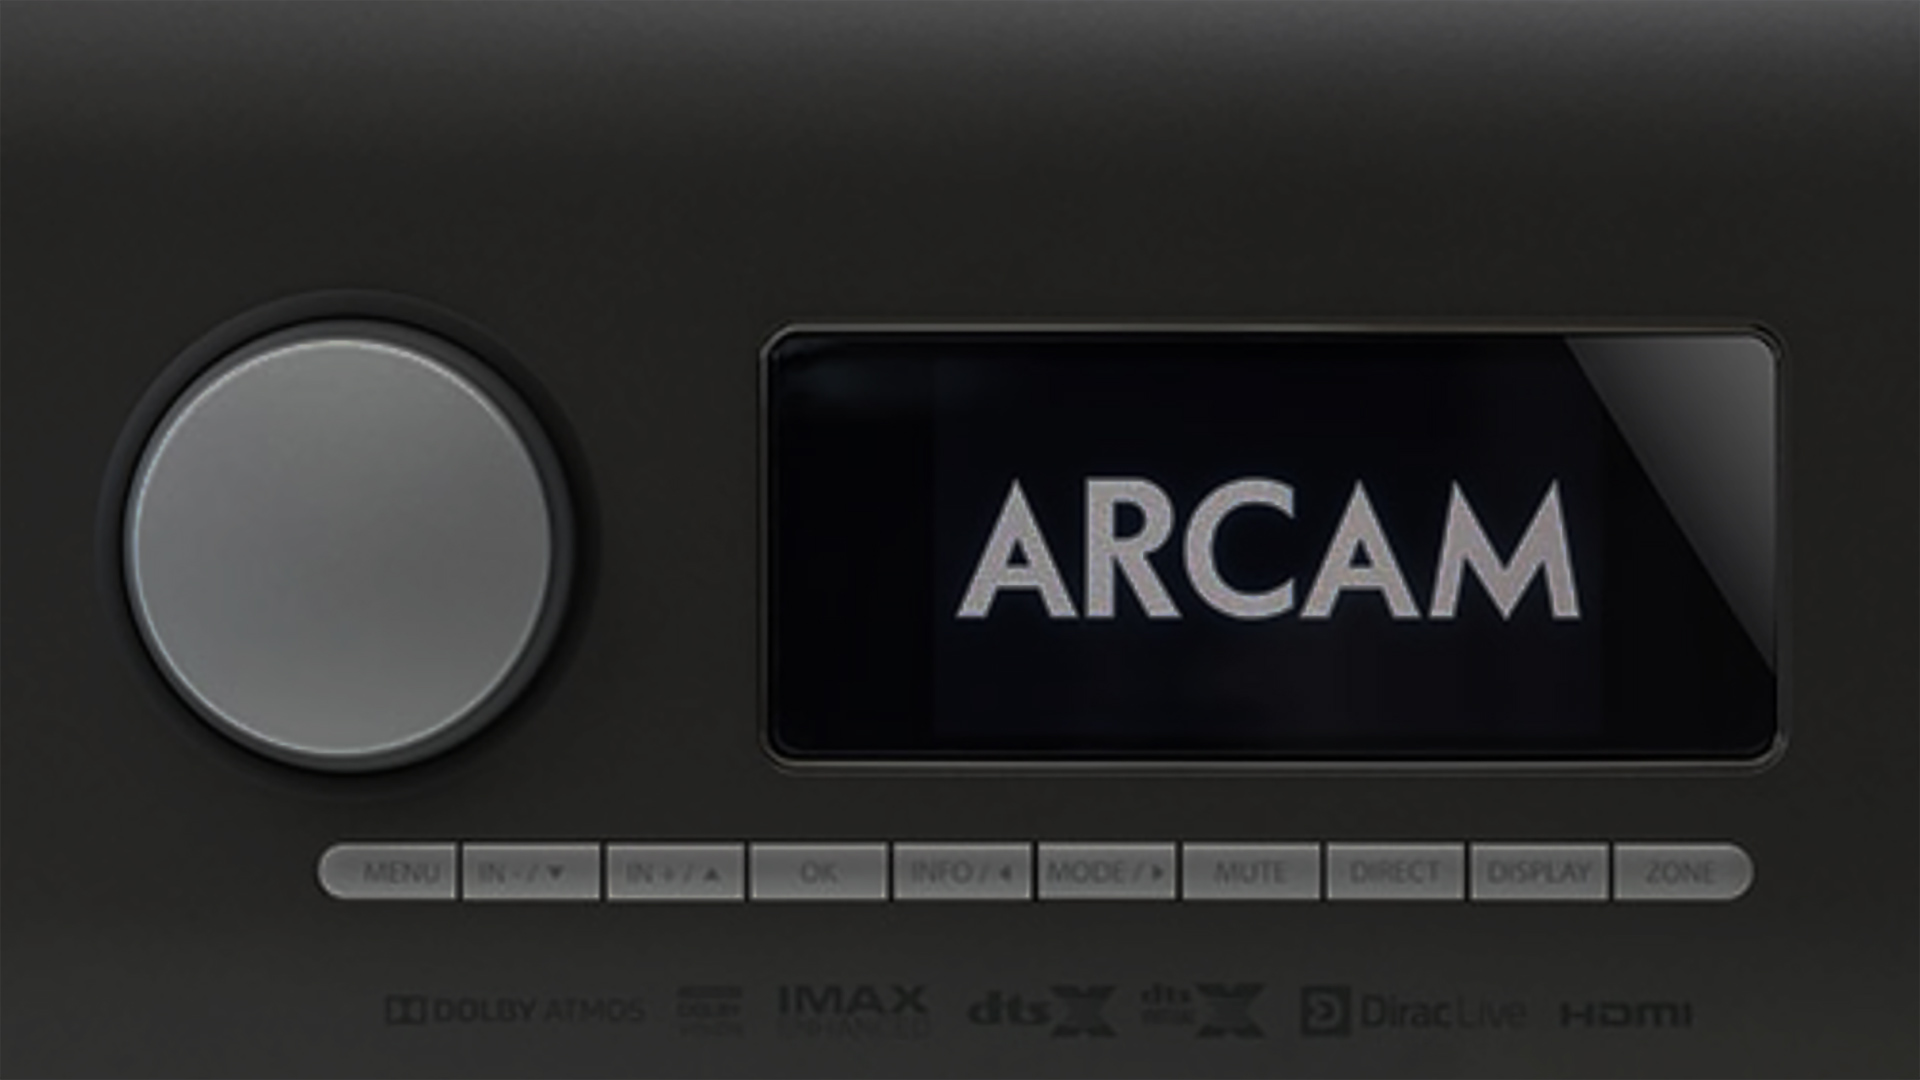 New Arcam AV Products | Unilet Sound & Vision